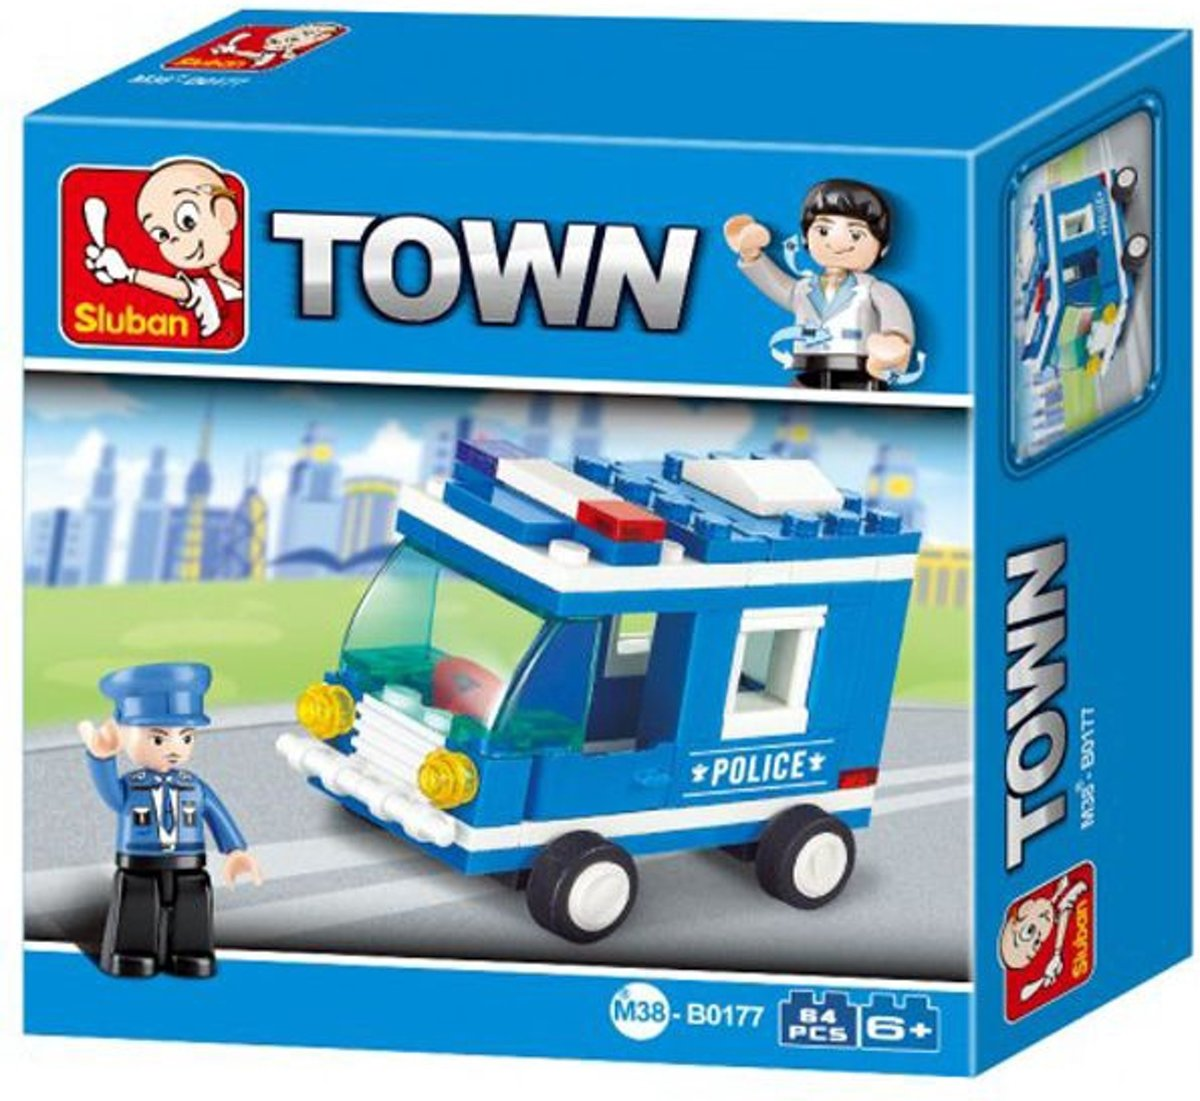 Sluban M38-B0177 Building Blocks Police Series Police Van